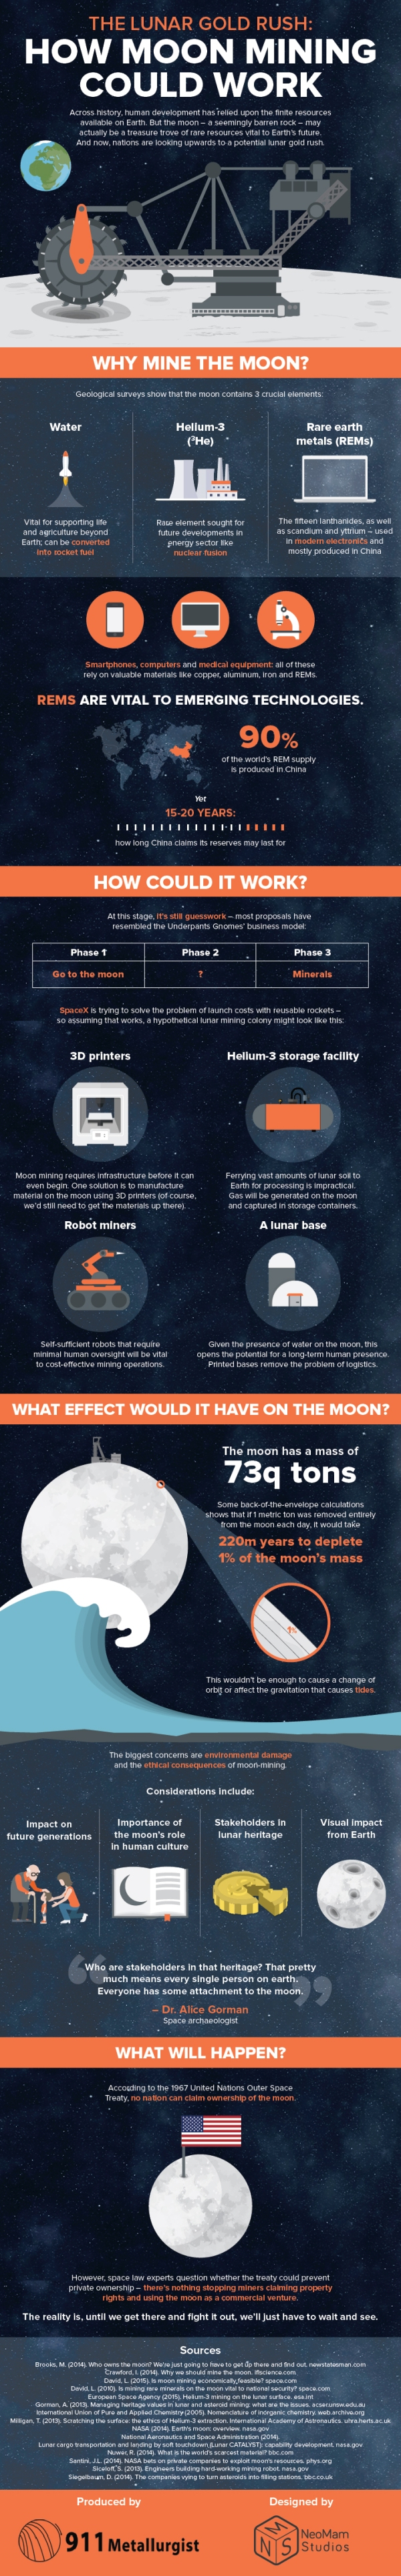 How Moon Mining Could Work – an infographic by NeoMam Studios (neomam.com)